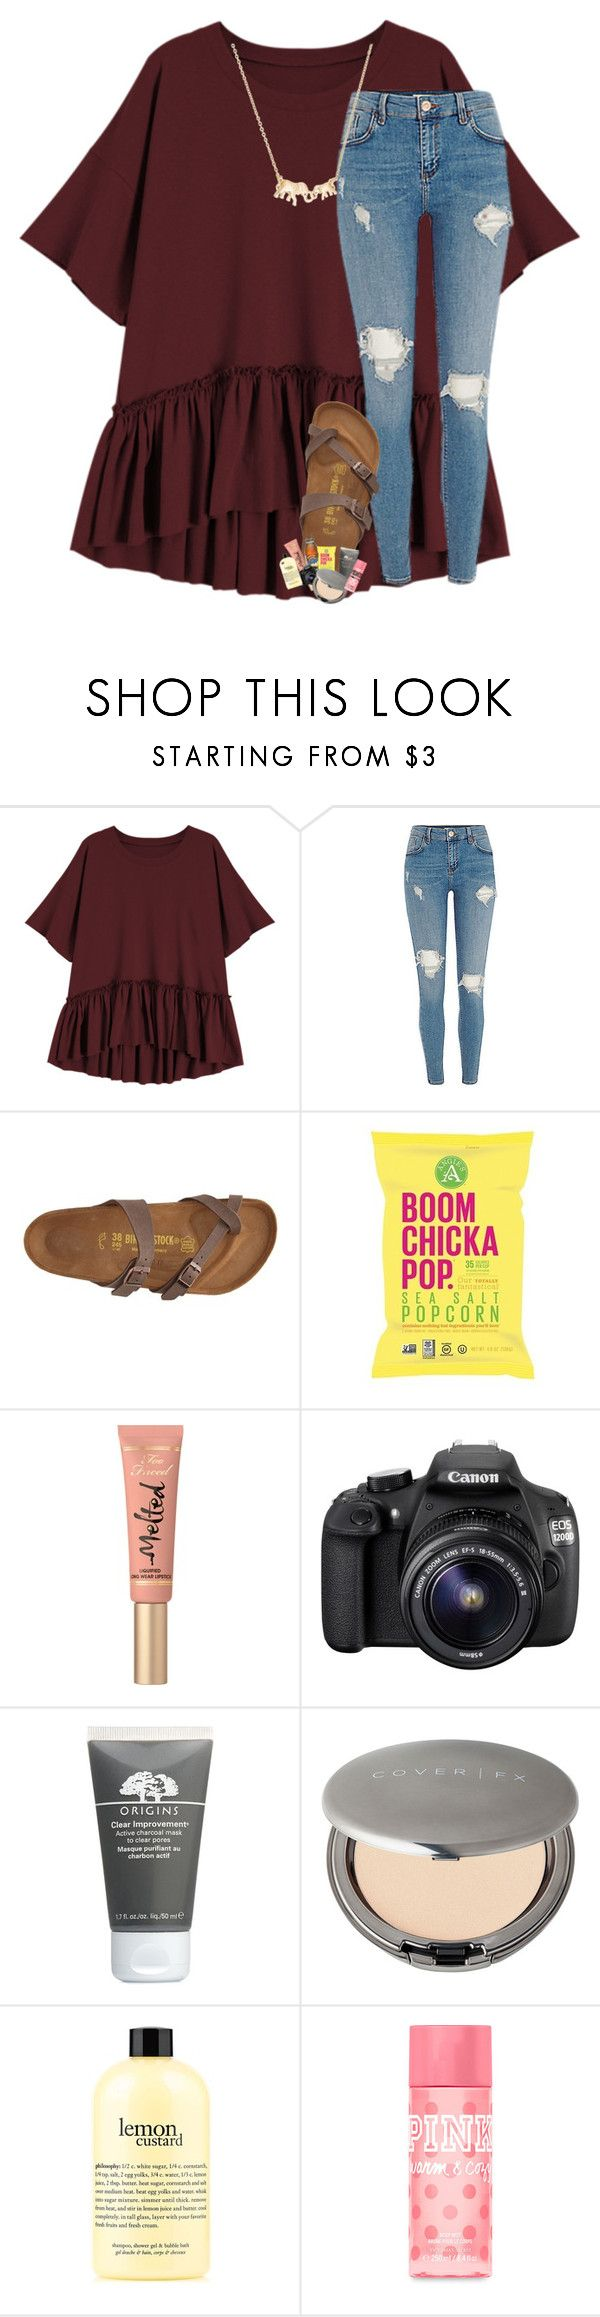 """come Vibe w/ Me"" by southernmermaid ❤ liked on Polyvore featuring Birkenstock, Too Faced Cosmetics, Eos, Origins, Cover FX, philosophy, Victoria's Secret PINK and Kate Spade"